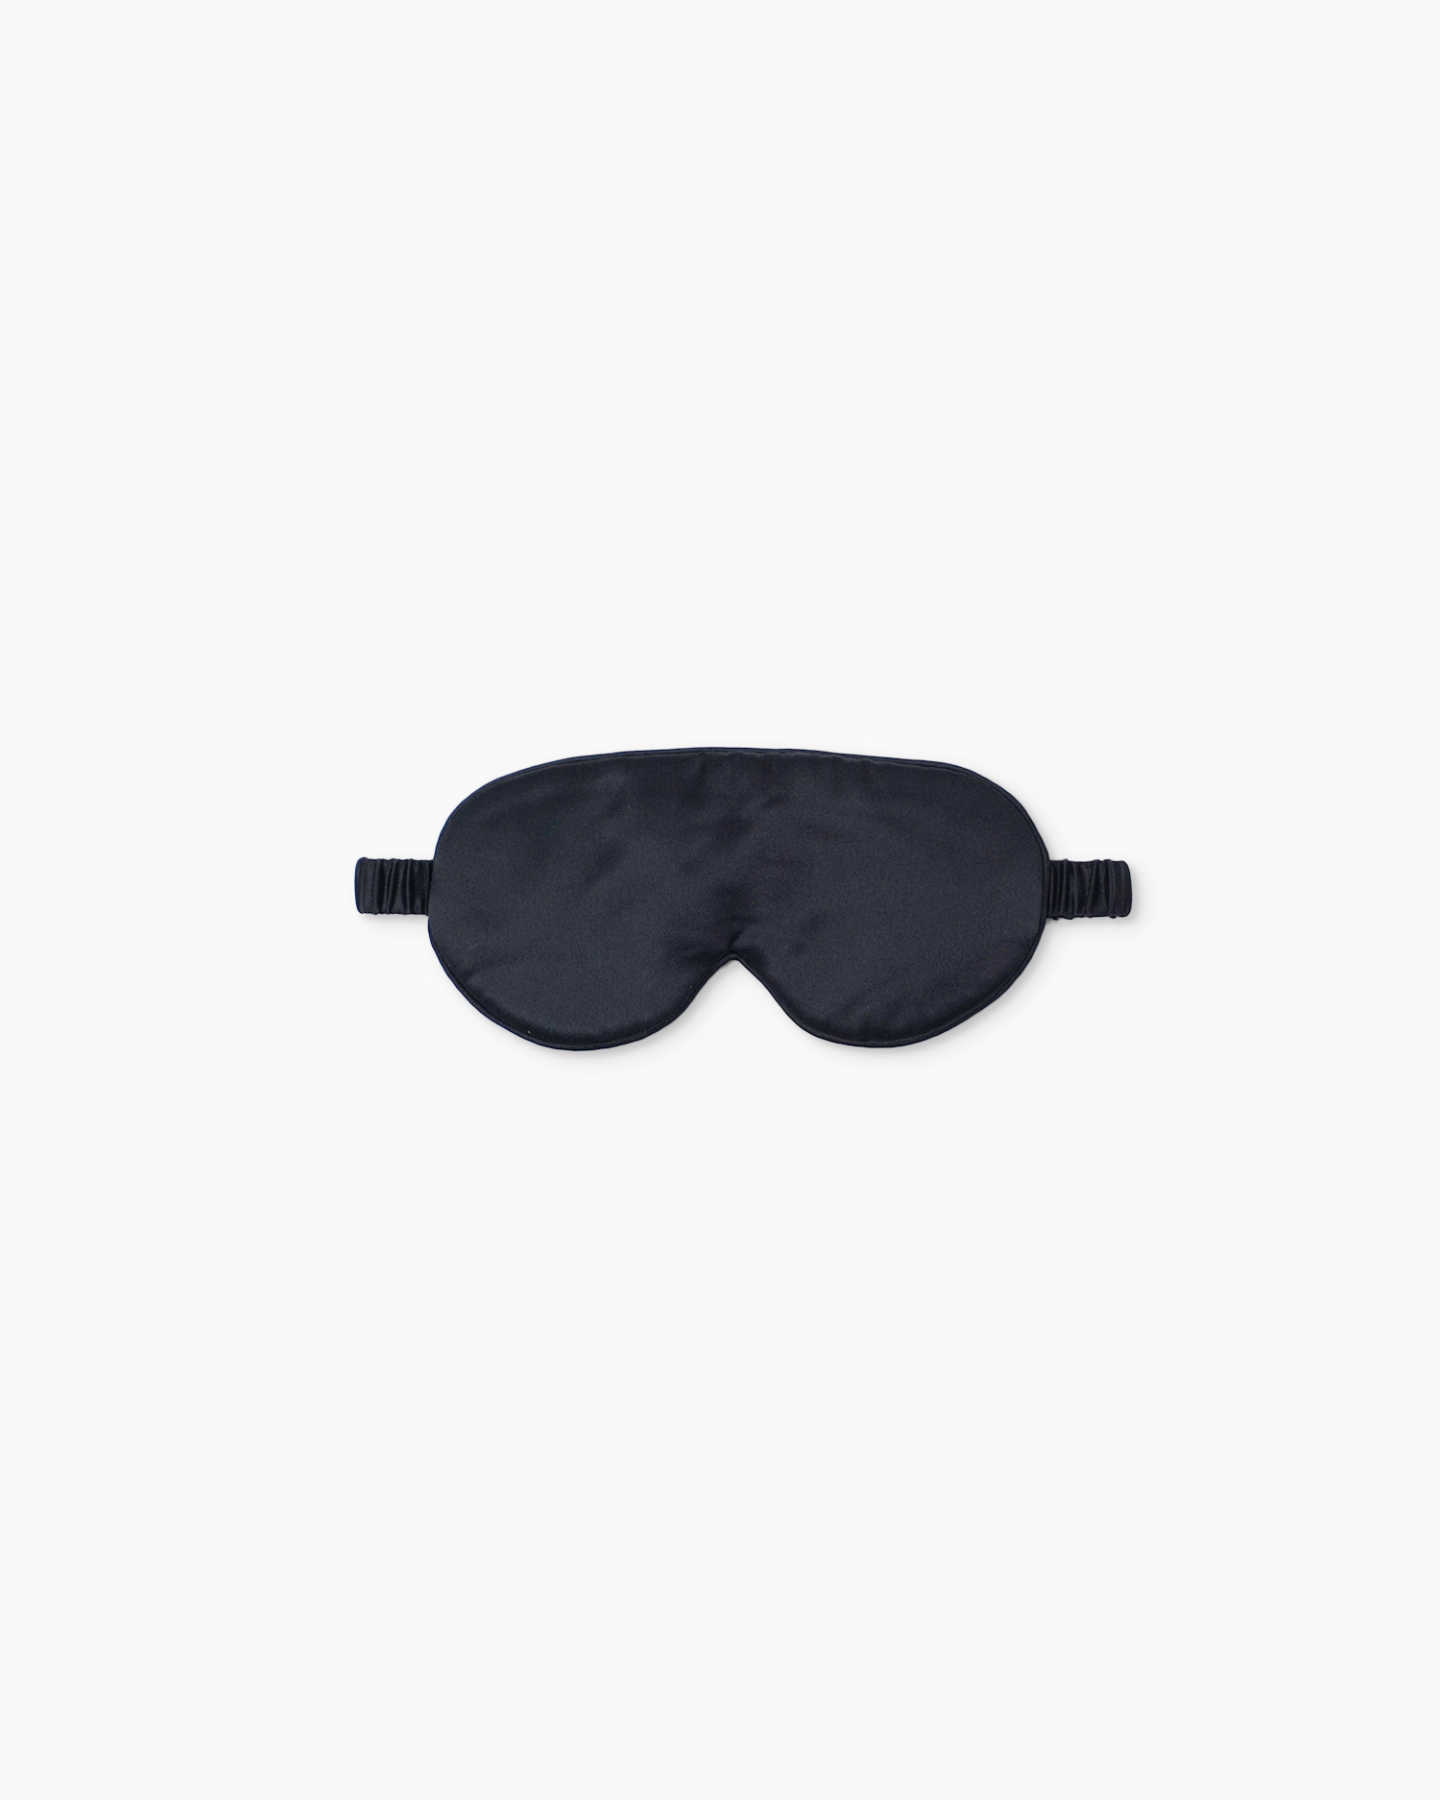 Mulberry Silk Beauty Sleep Mask - Black - 1